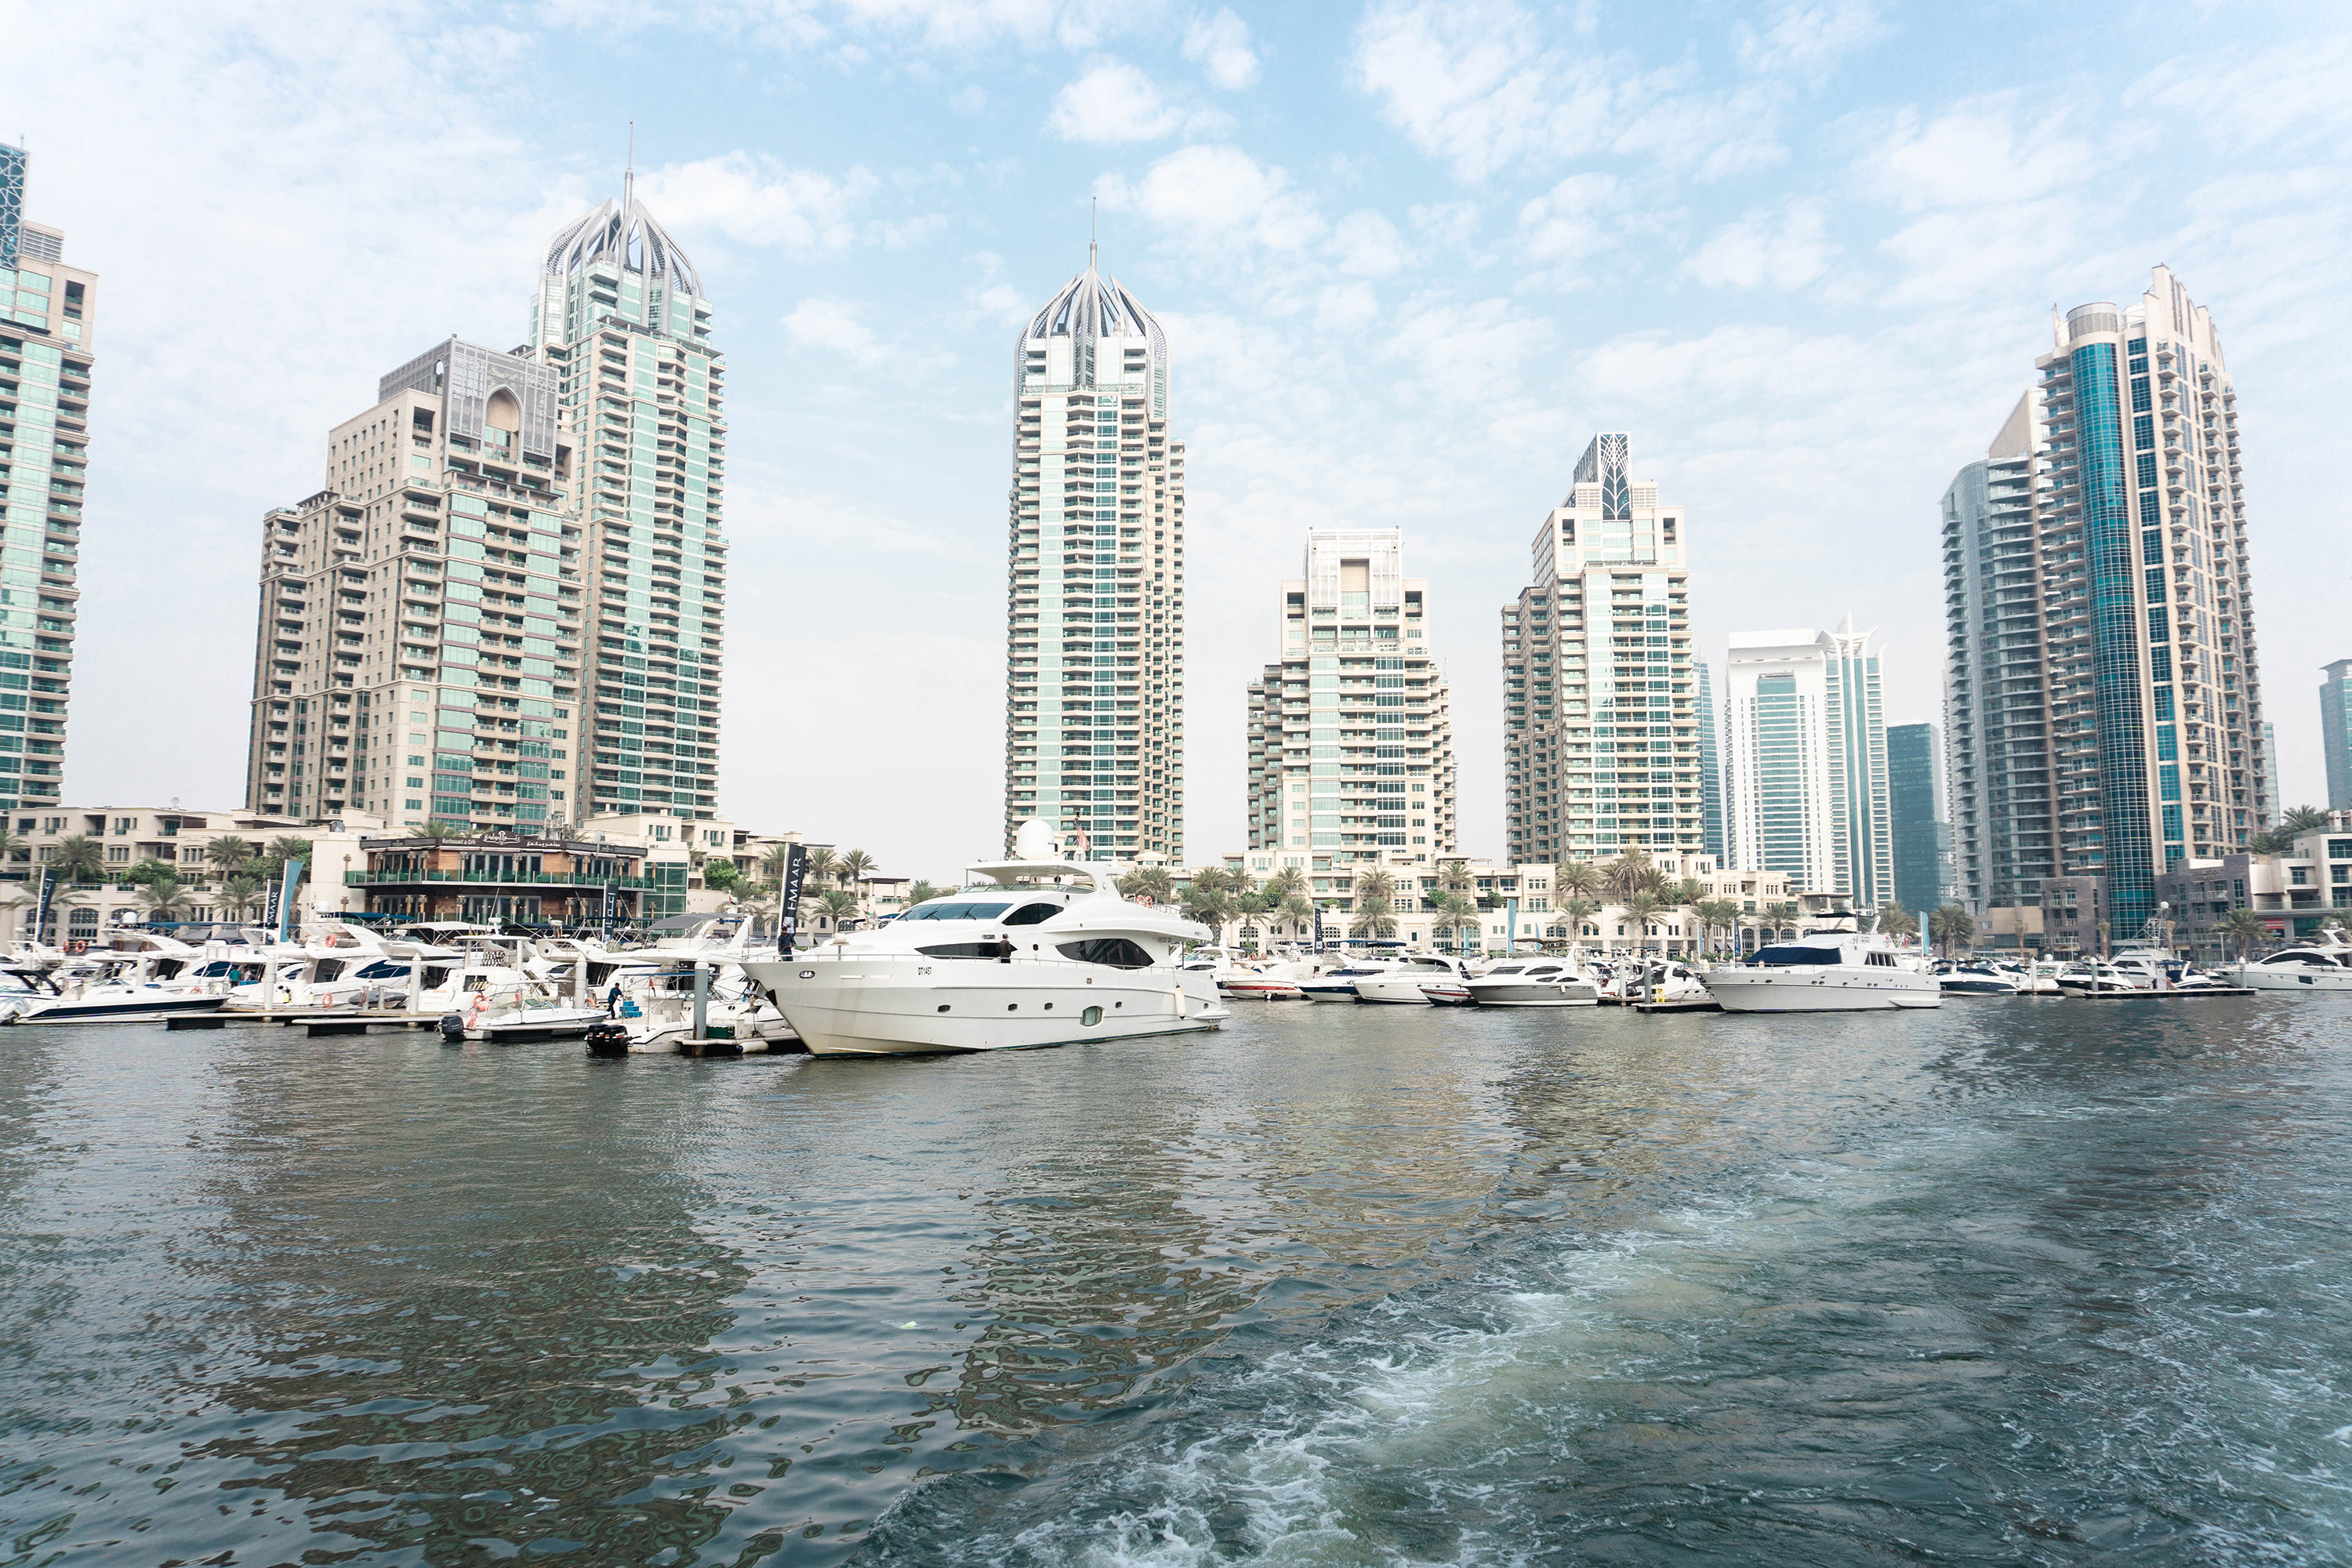 1 day in Dubai – Dubai Marina